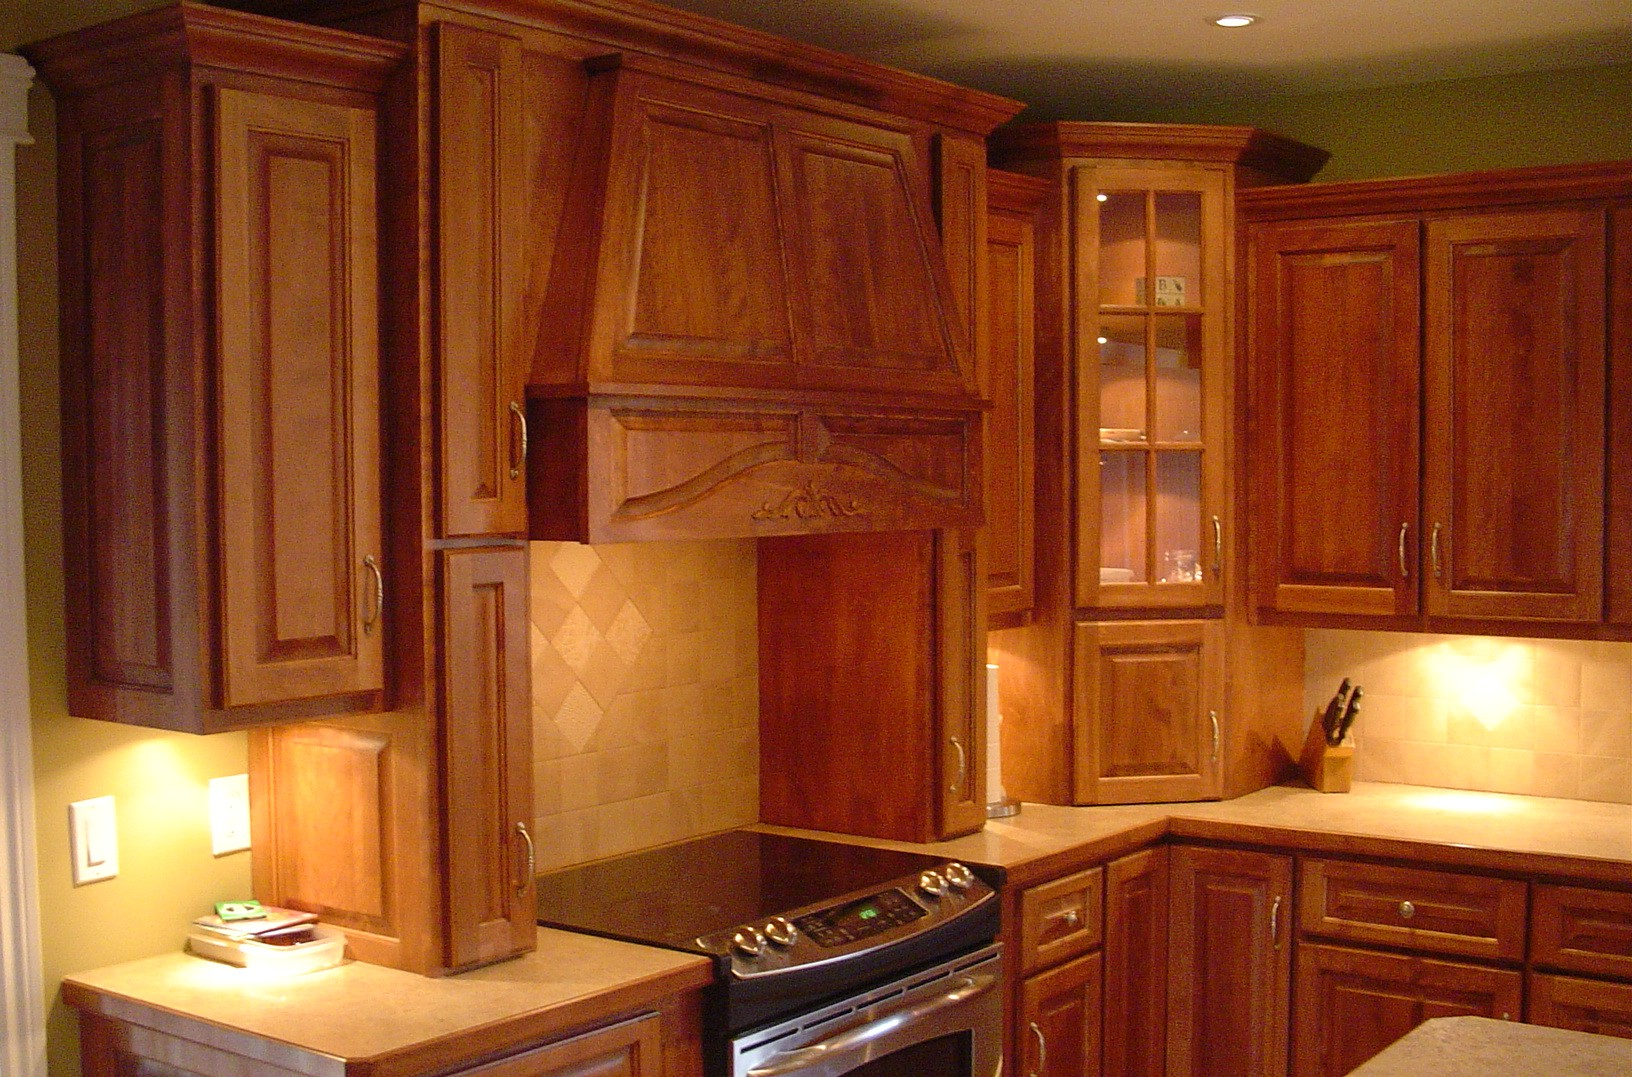 Photo Of Kitchen Cabinets Norm 39s Carpentry And Cabinet Making Pei Cabinet Making